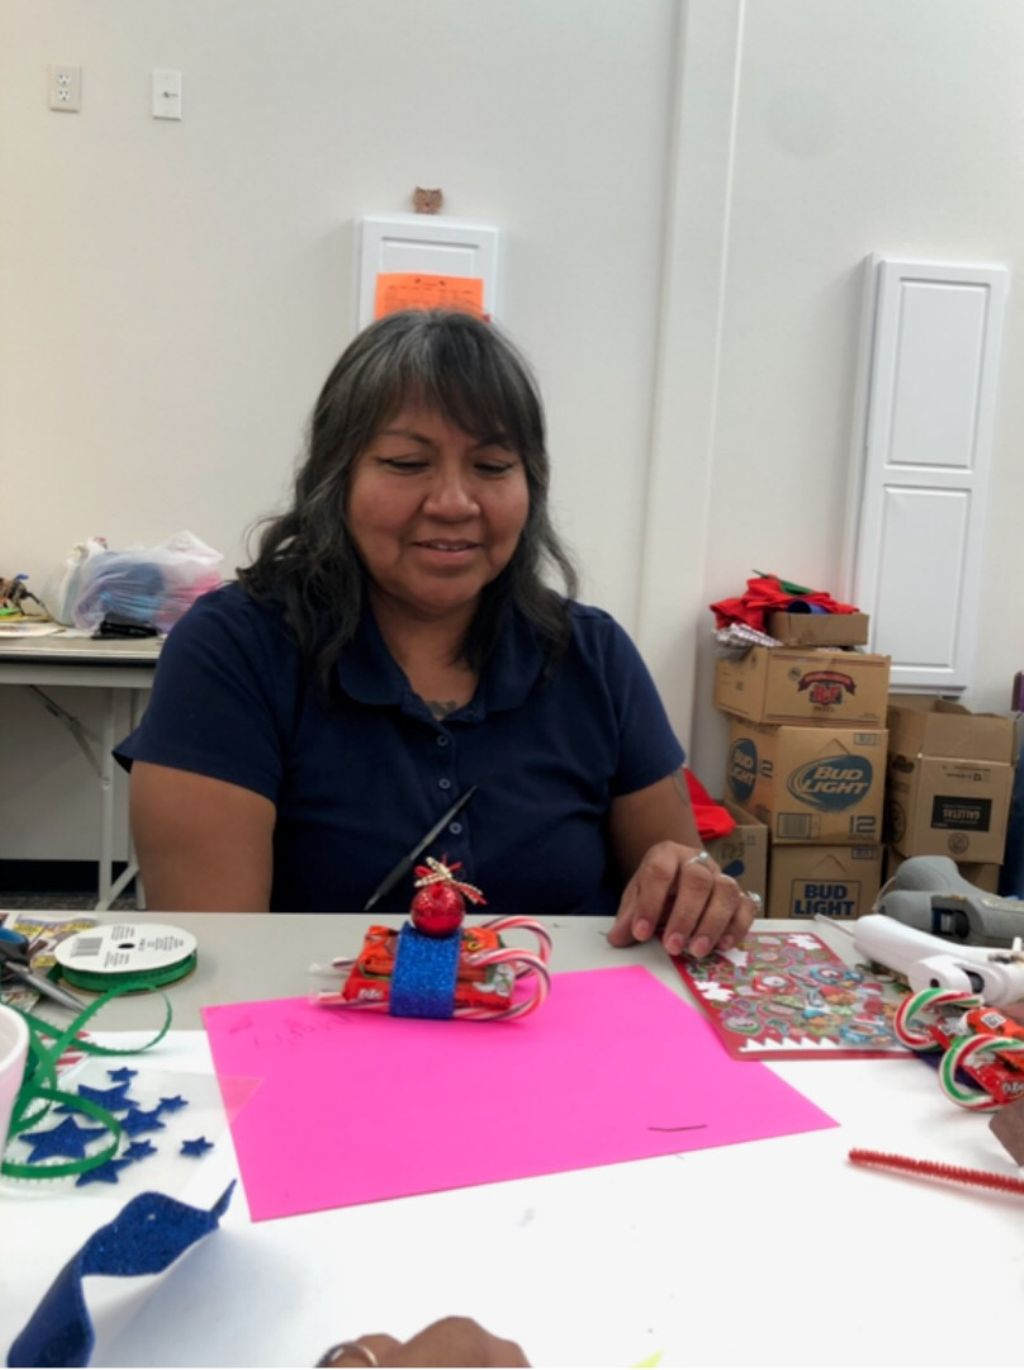 An older woman smiles down at a little craft